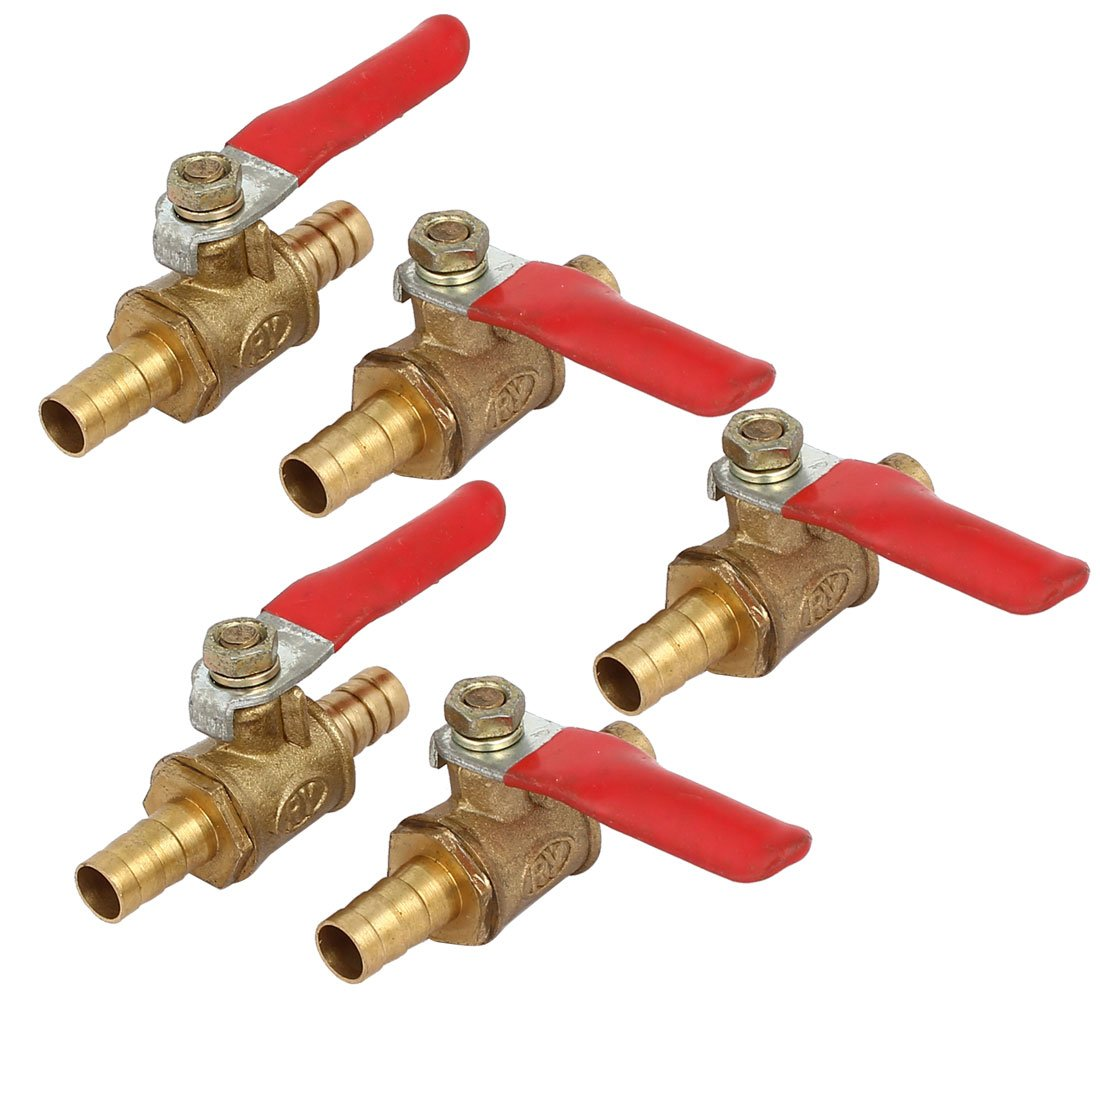 180 Degree Operation Handle 5 Pcs uxcell 6mm Brass Barb x Barb Mini Ball Valve